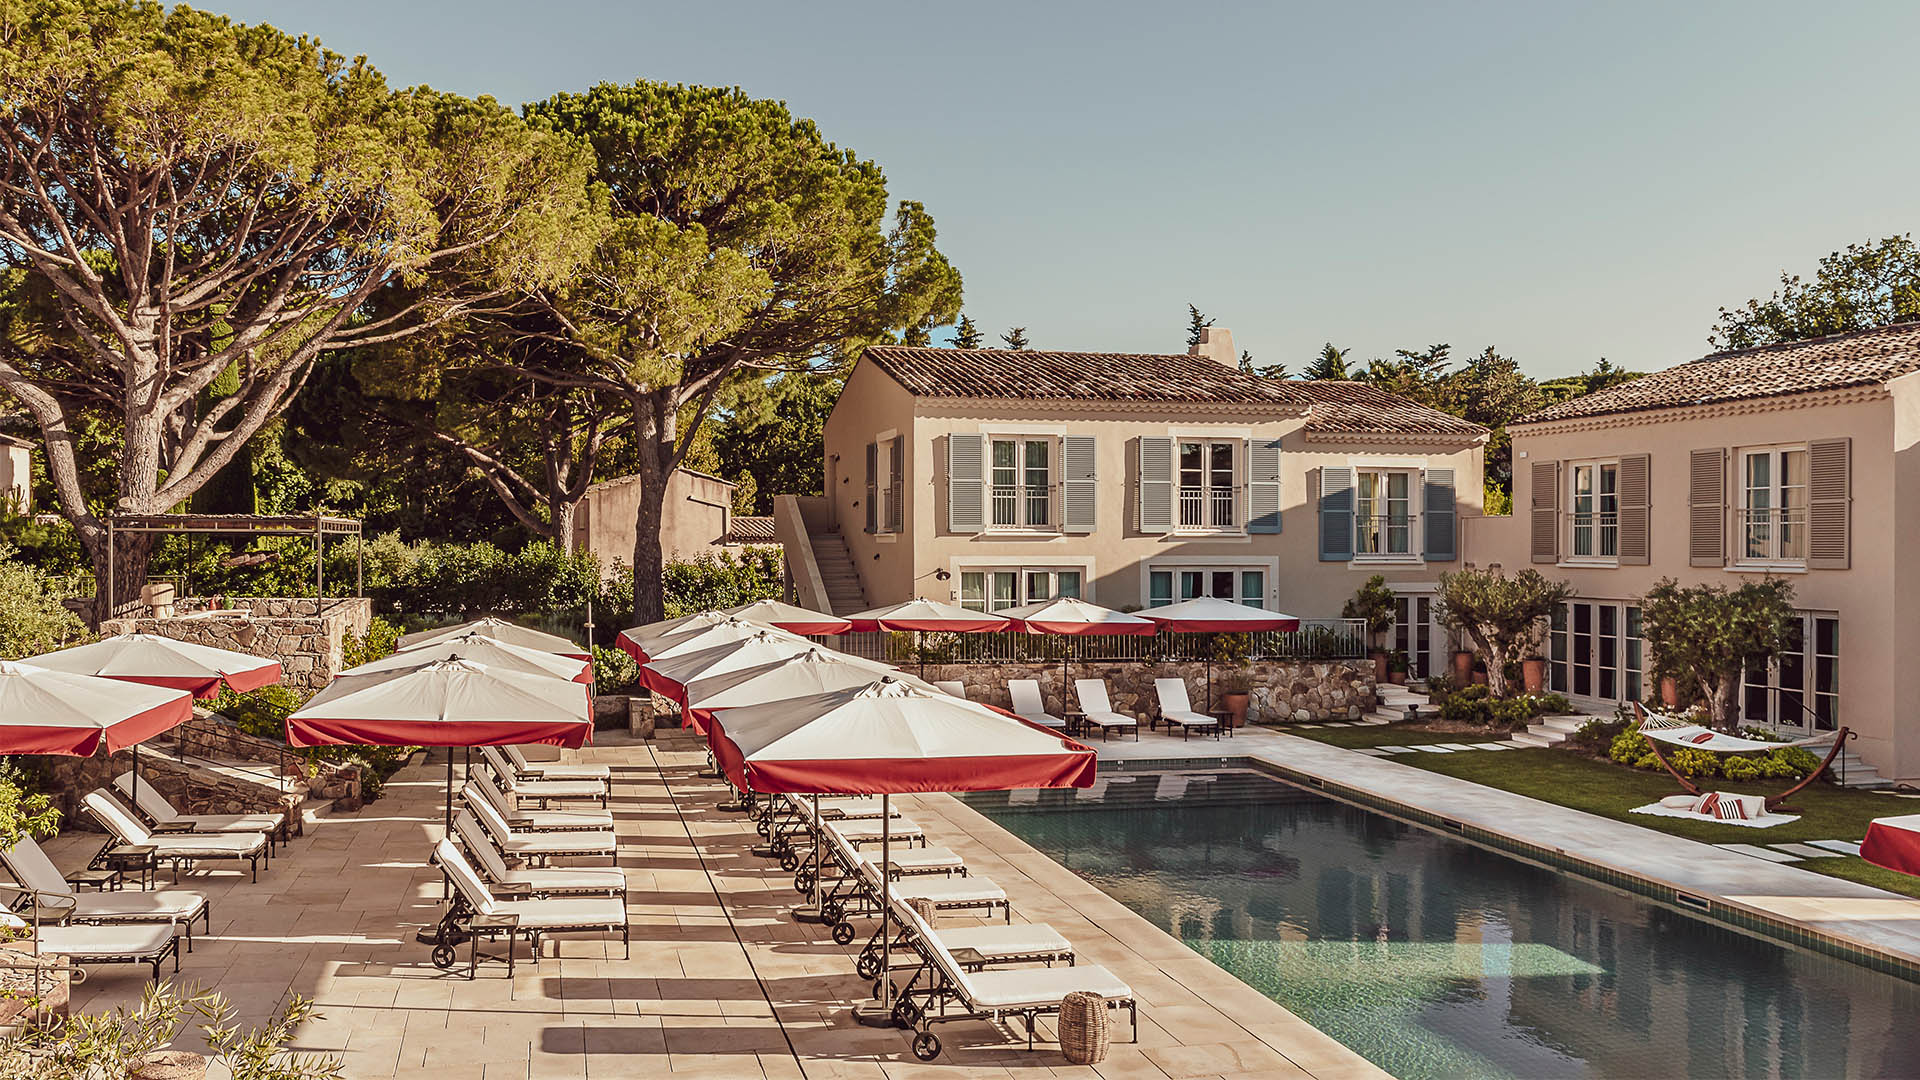 Riviera chic: 10 must-visit hotels on the Côte d'Azur